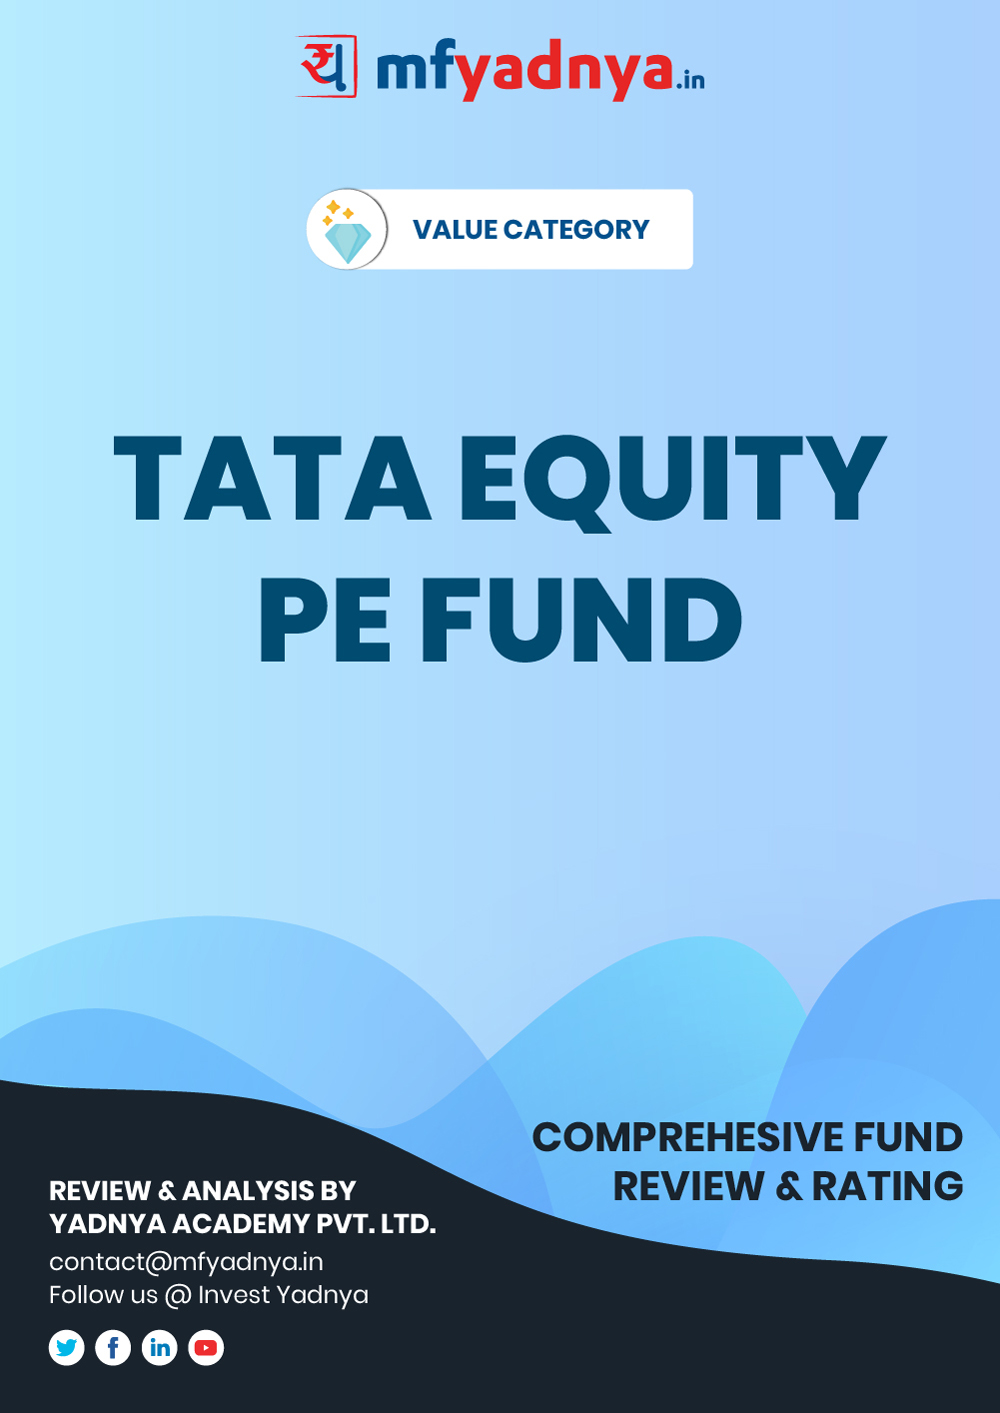 Value or Contra Category Review - TATA Equity PE Fund. Most Comprehensive and detailed MF review based on Yadnya's proprietary methodology of Green, Yellow & Red Star. Detailed Analysis & Review based on Sept 30th, 2019 data.